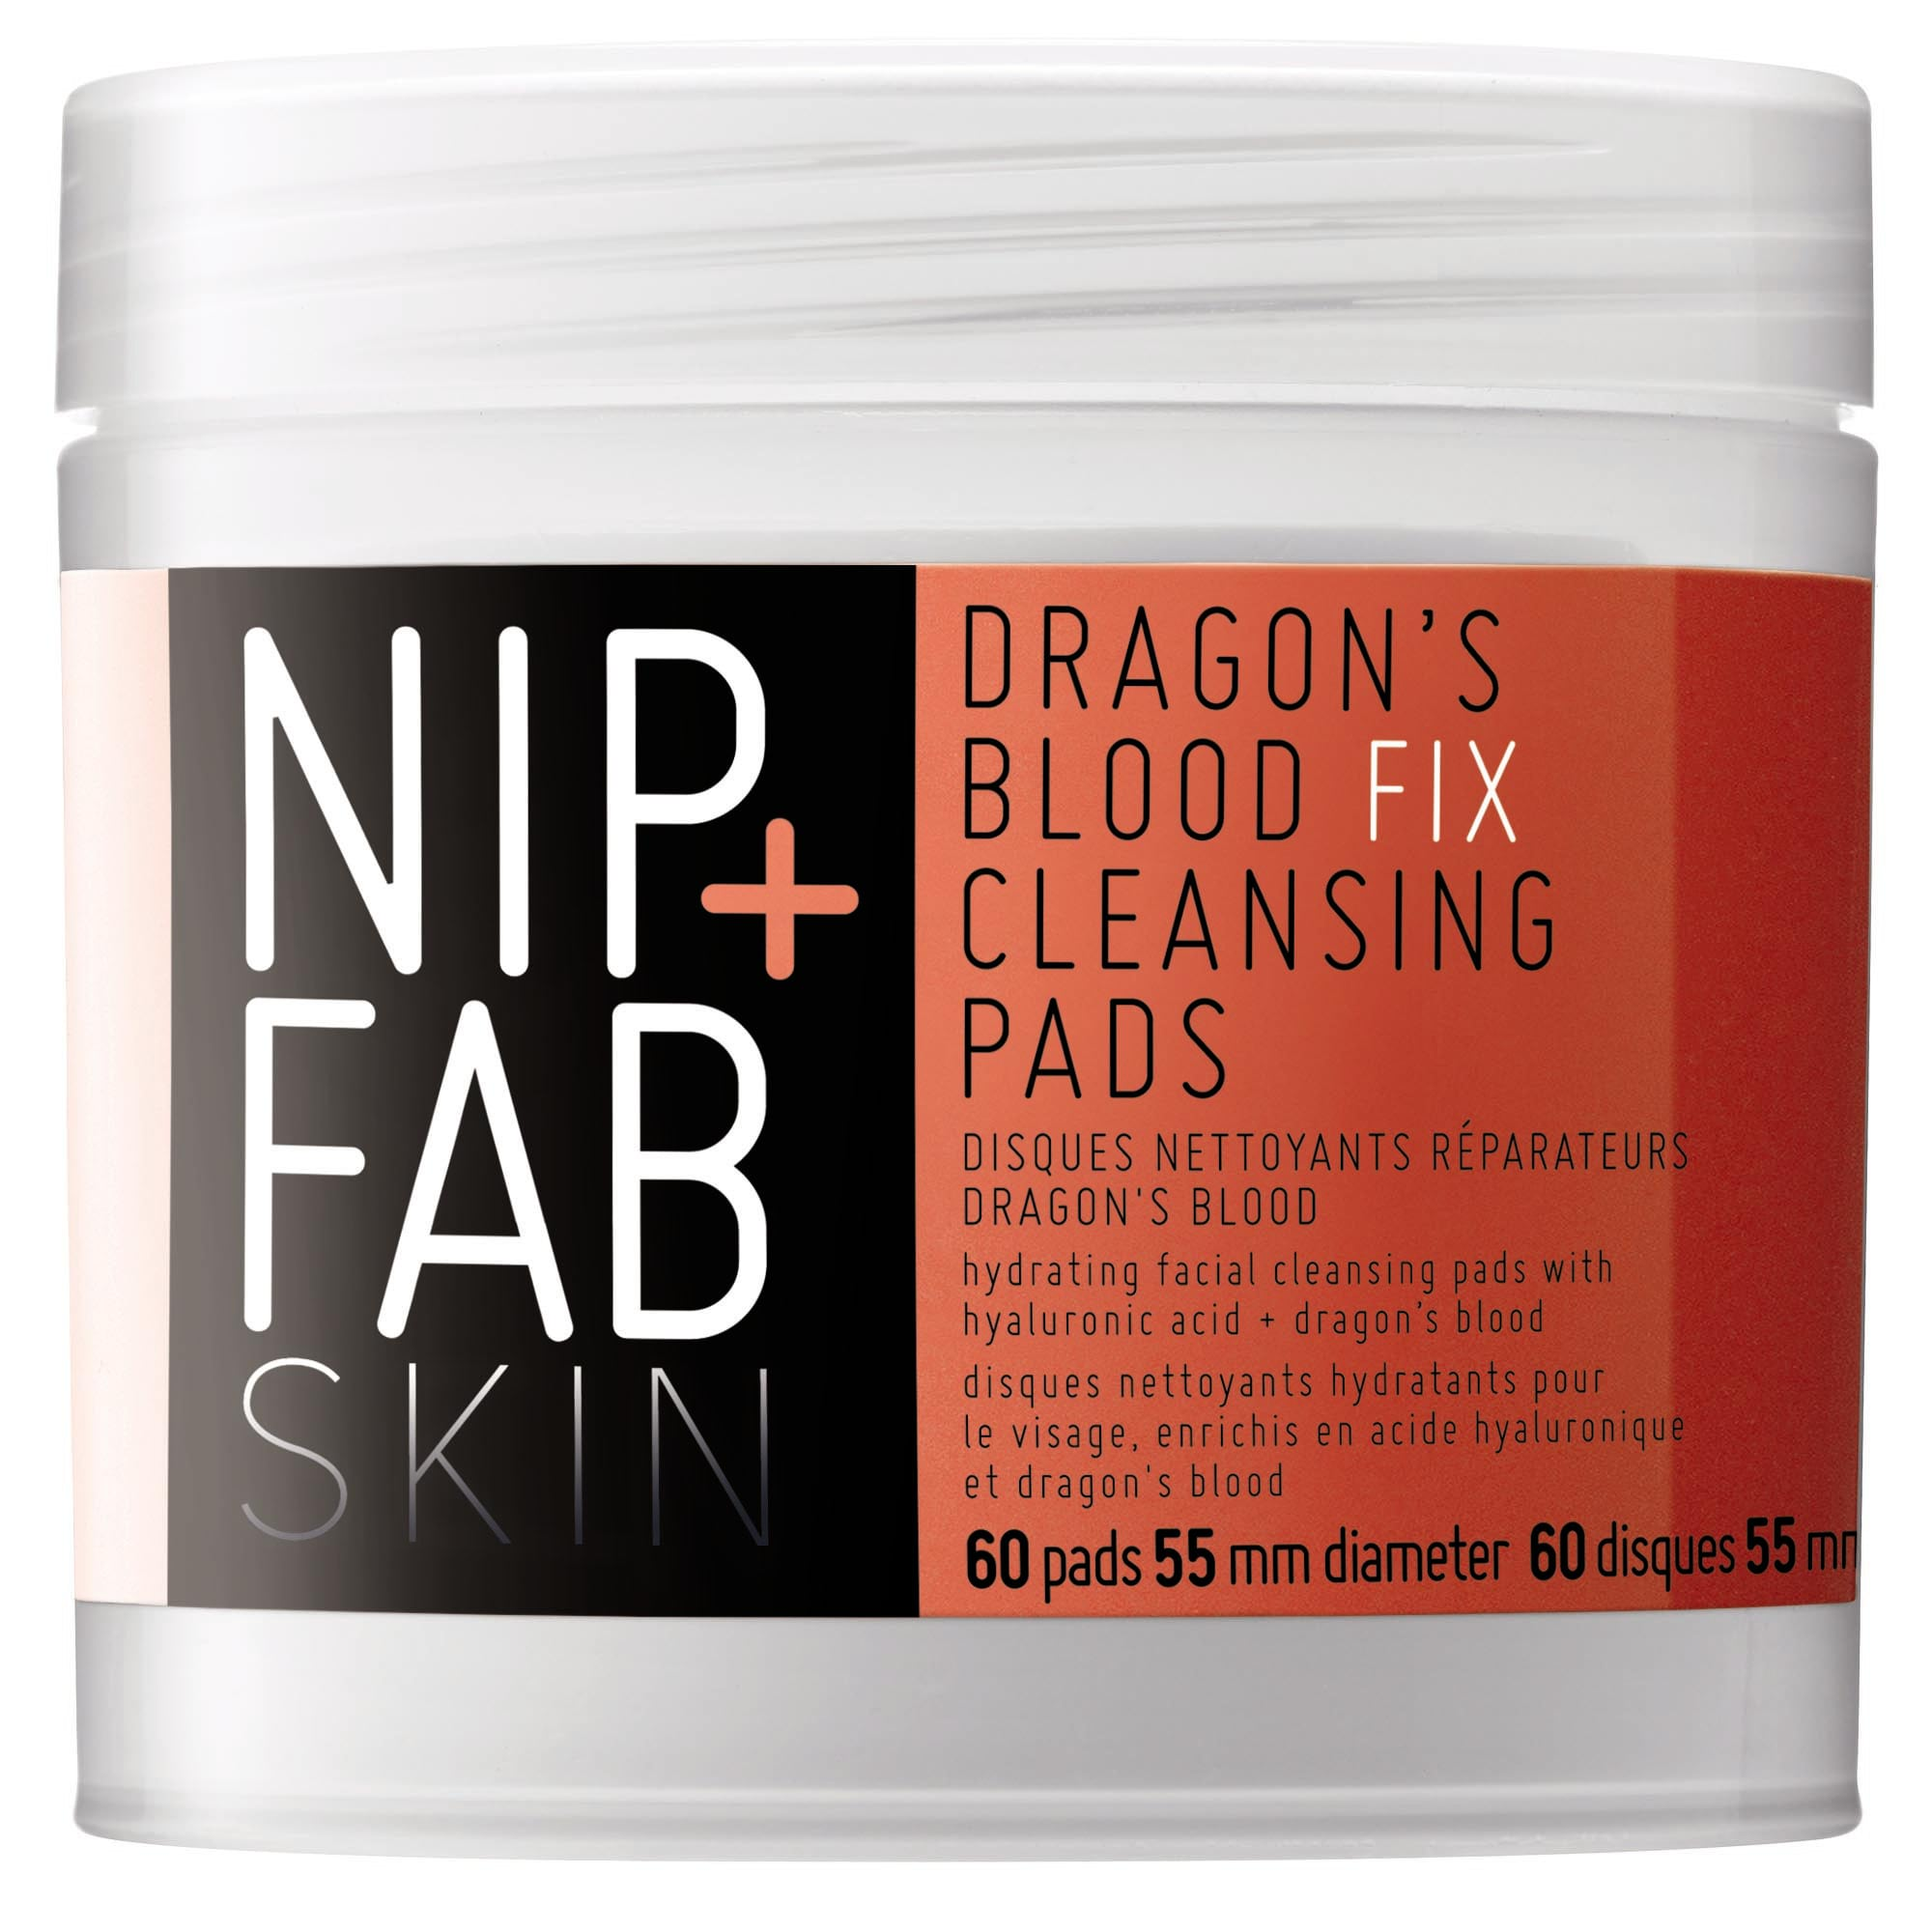 DRAGONS BLOOD FIX CLEANSING PADS